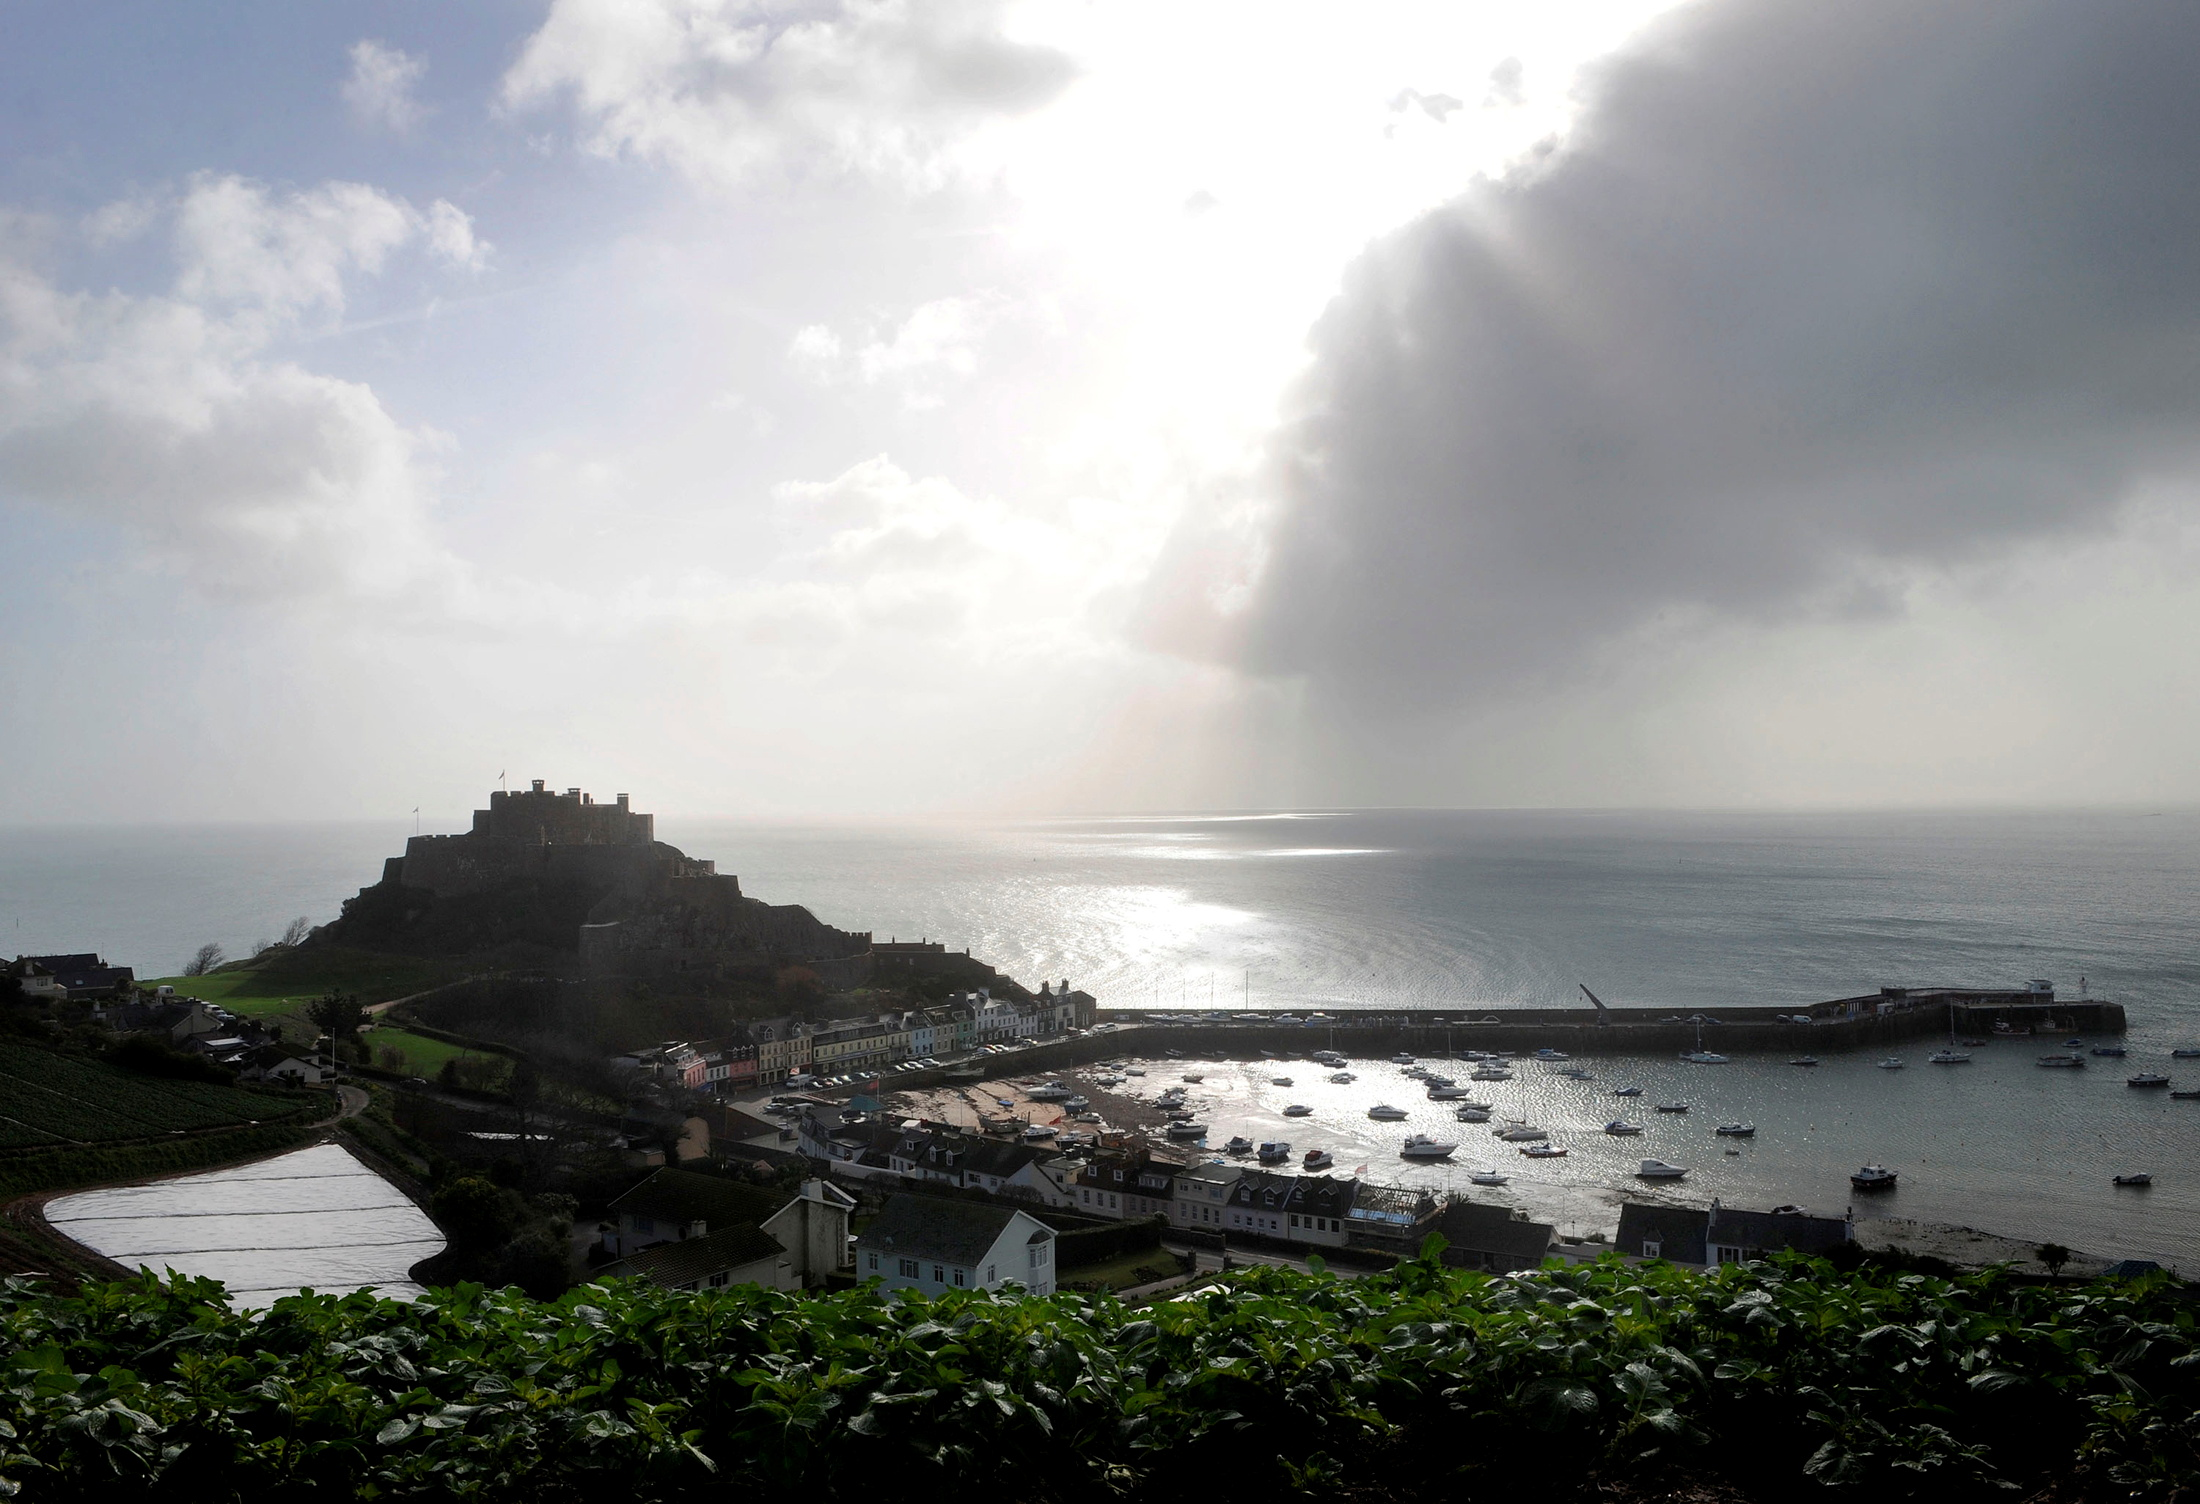 The village of Gorey Harbour and Mont Orgueil castle are seen in Jersey in this March 1, 2008 file photo./Toby Melville